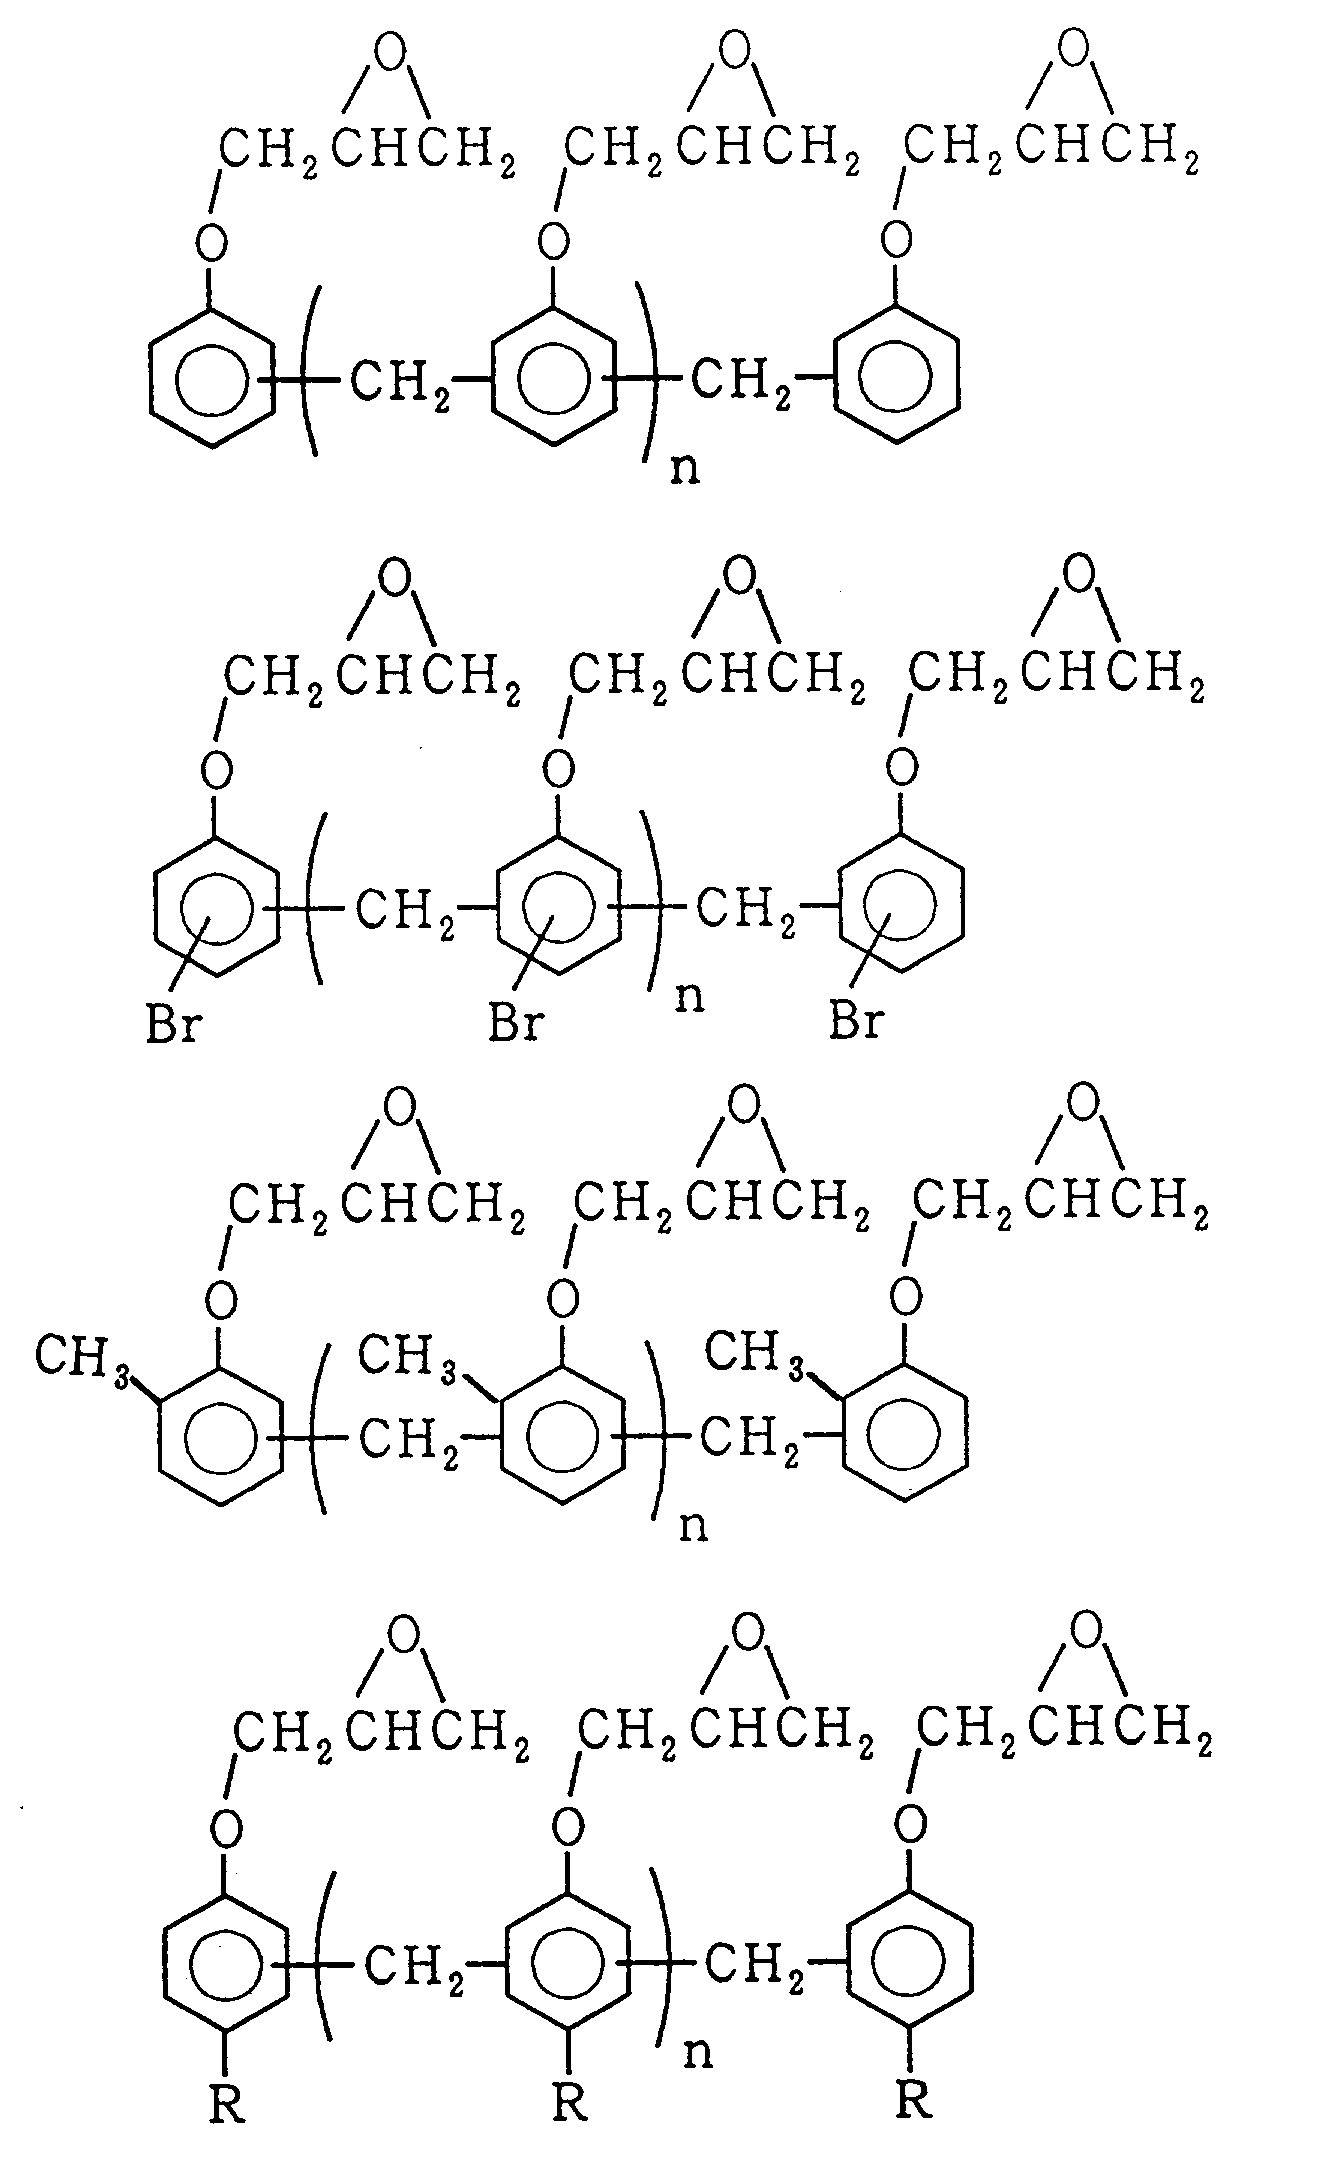 ep0672953a2 photosensitive recording material photosensitive Lewis Electron Dot in the formulas r represents an alkyl group and polymerization degree n is 1 to 20